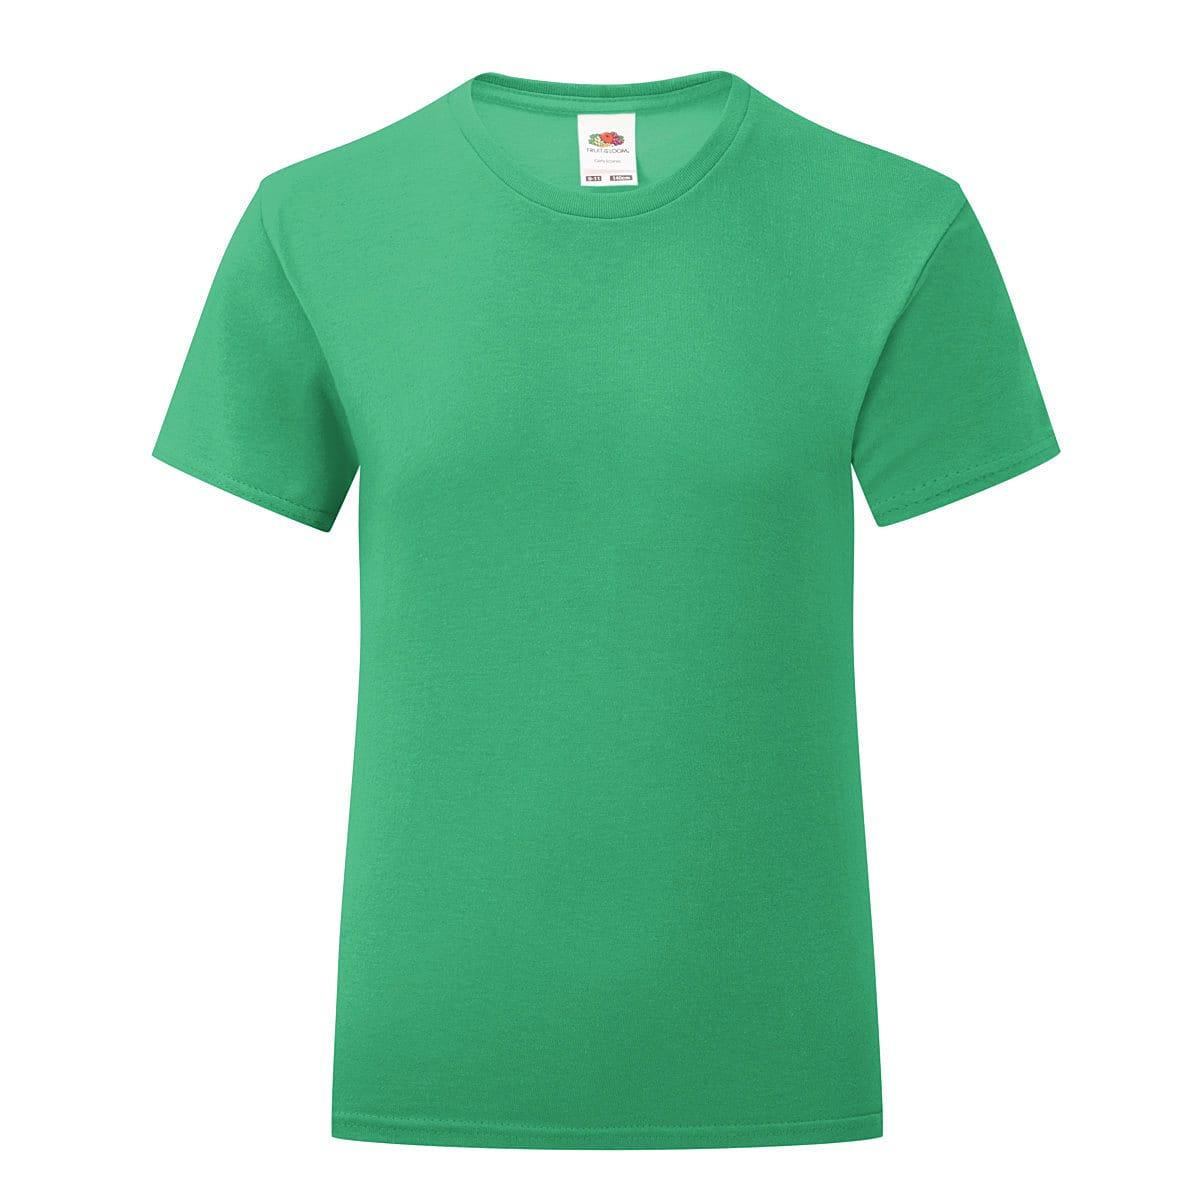 Fruit Of The Loom Girls Iconic T-Shirt in Kelly Green (Product Code: 61025)